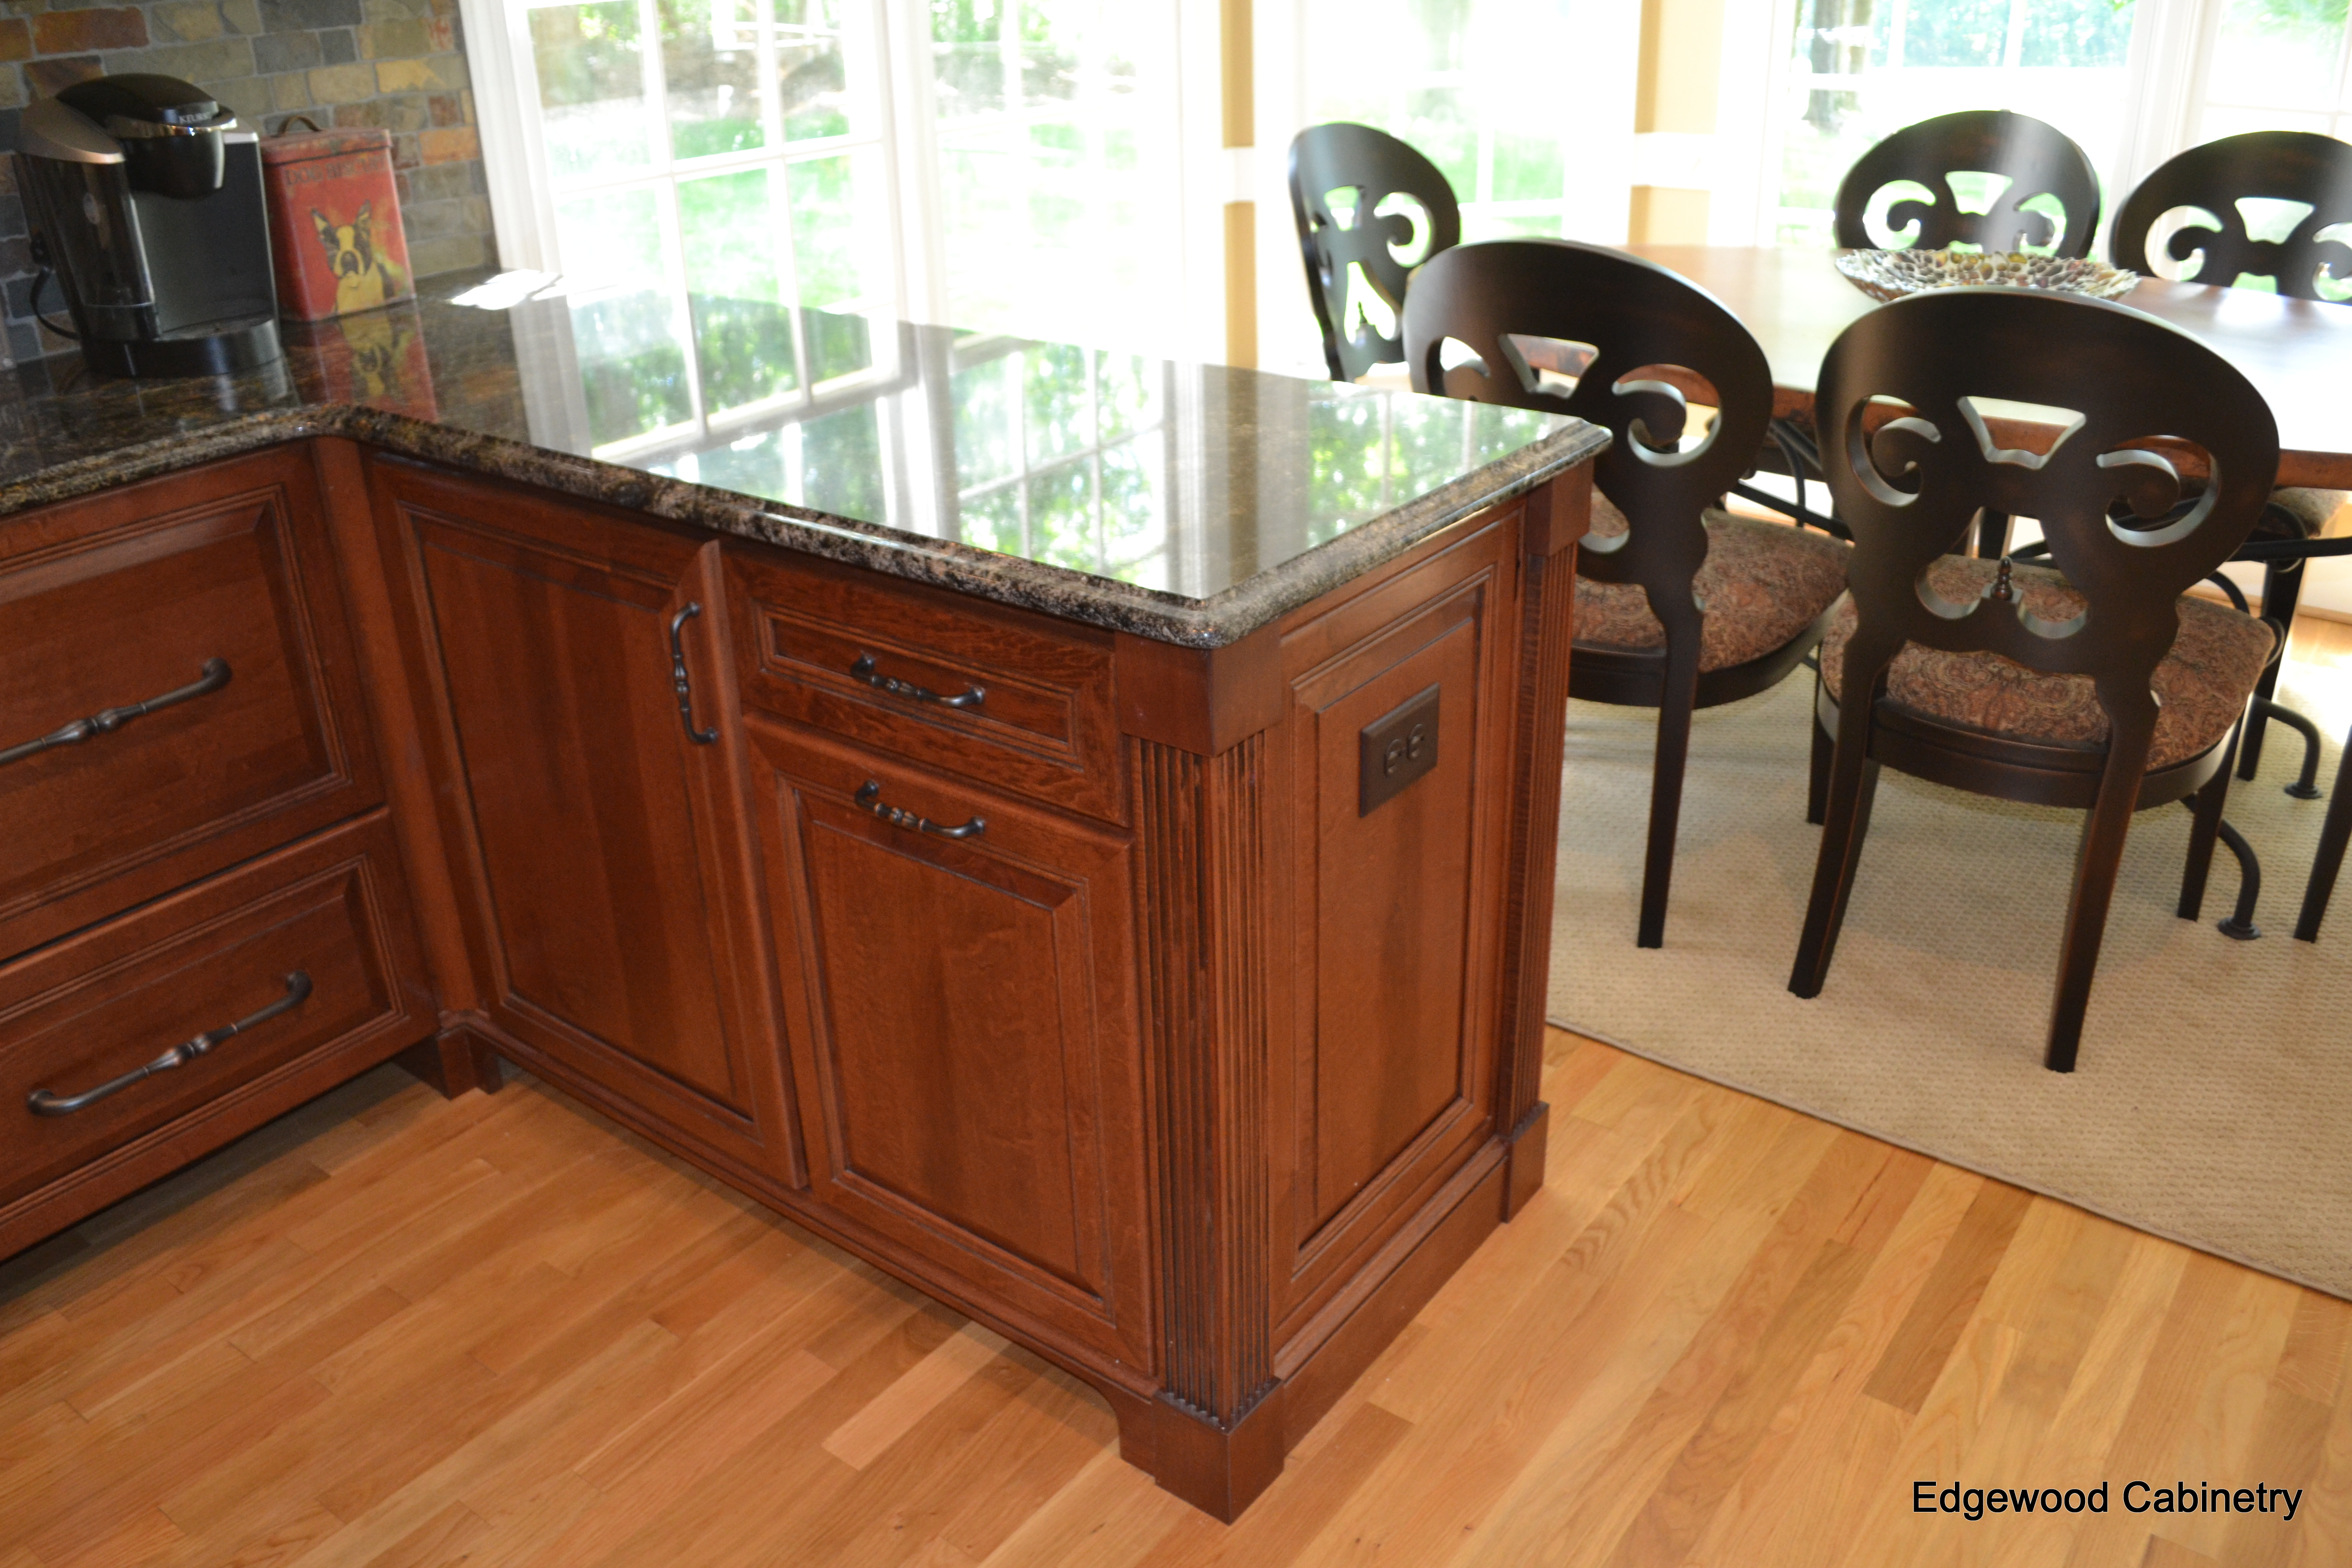 Cabinets Or Flooring First Edgewood Cabinetry